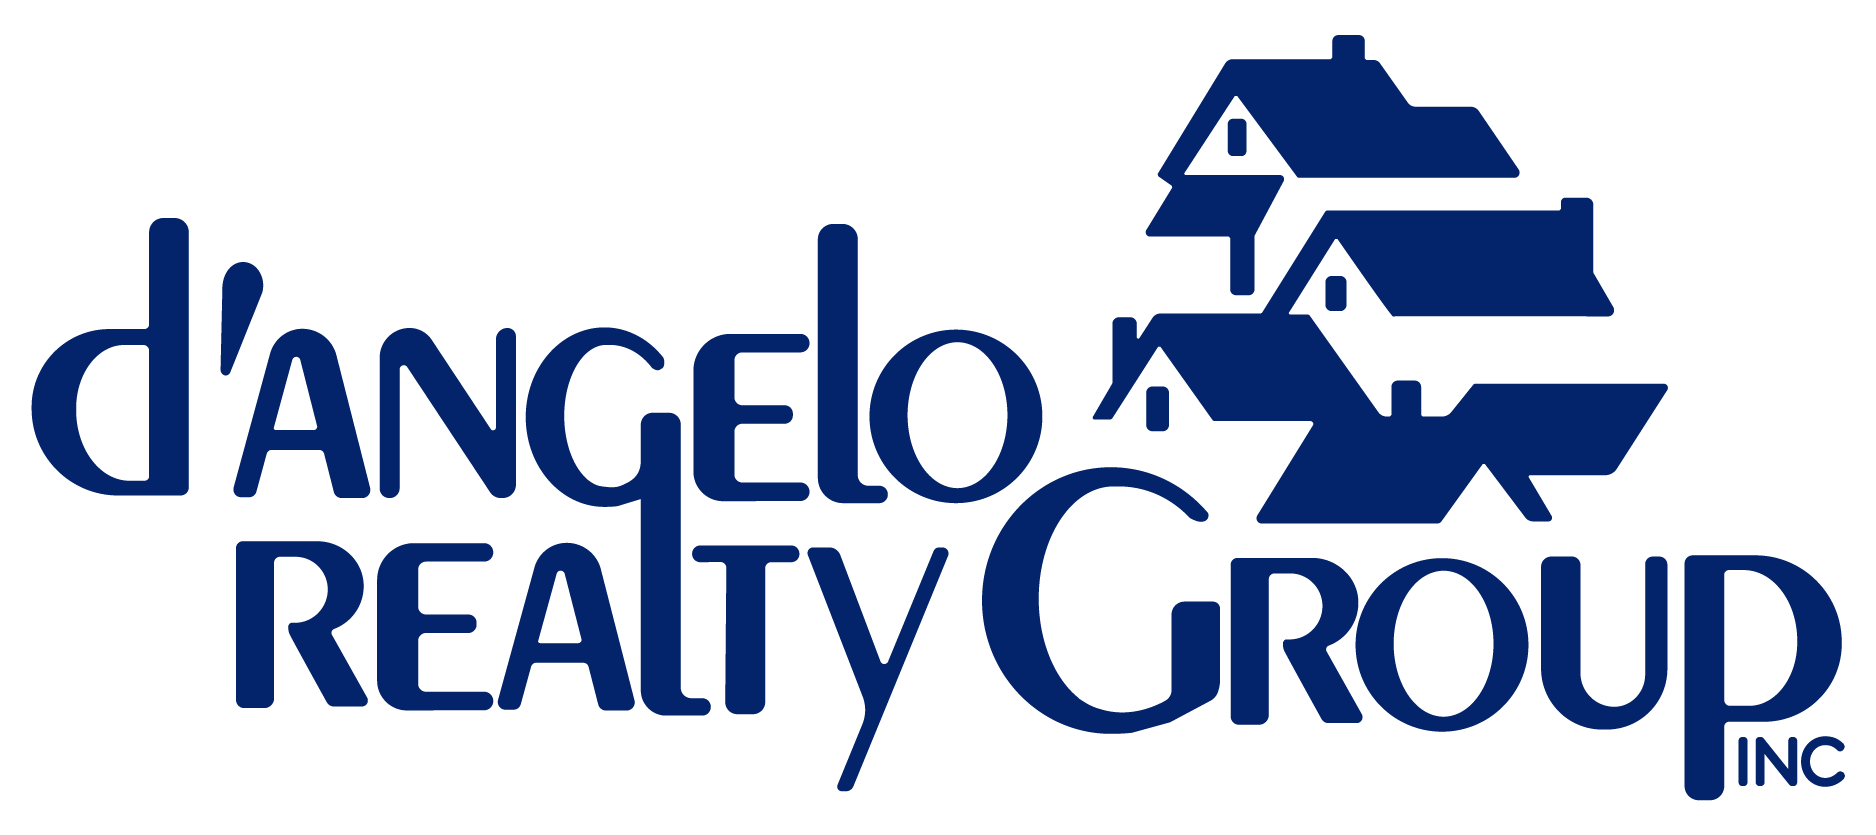 D'Angelo Realty Group